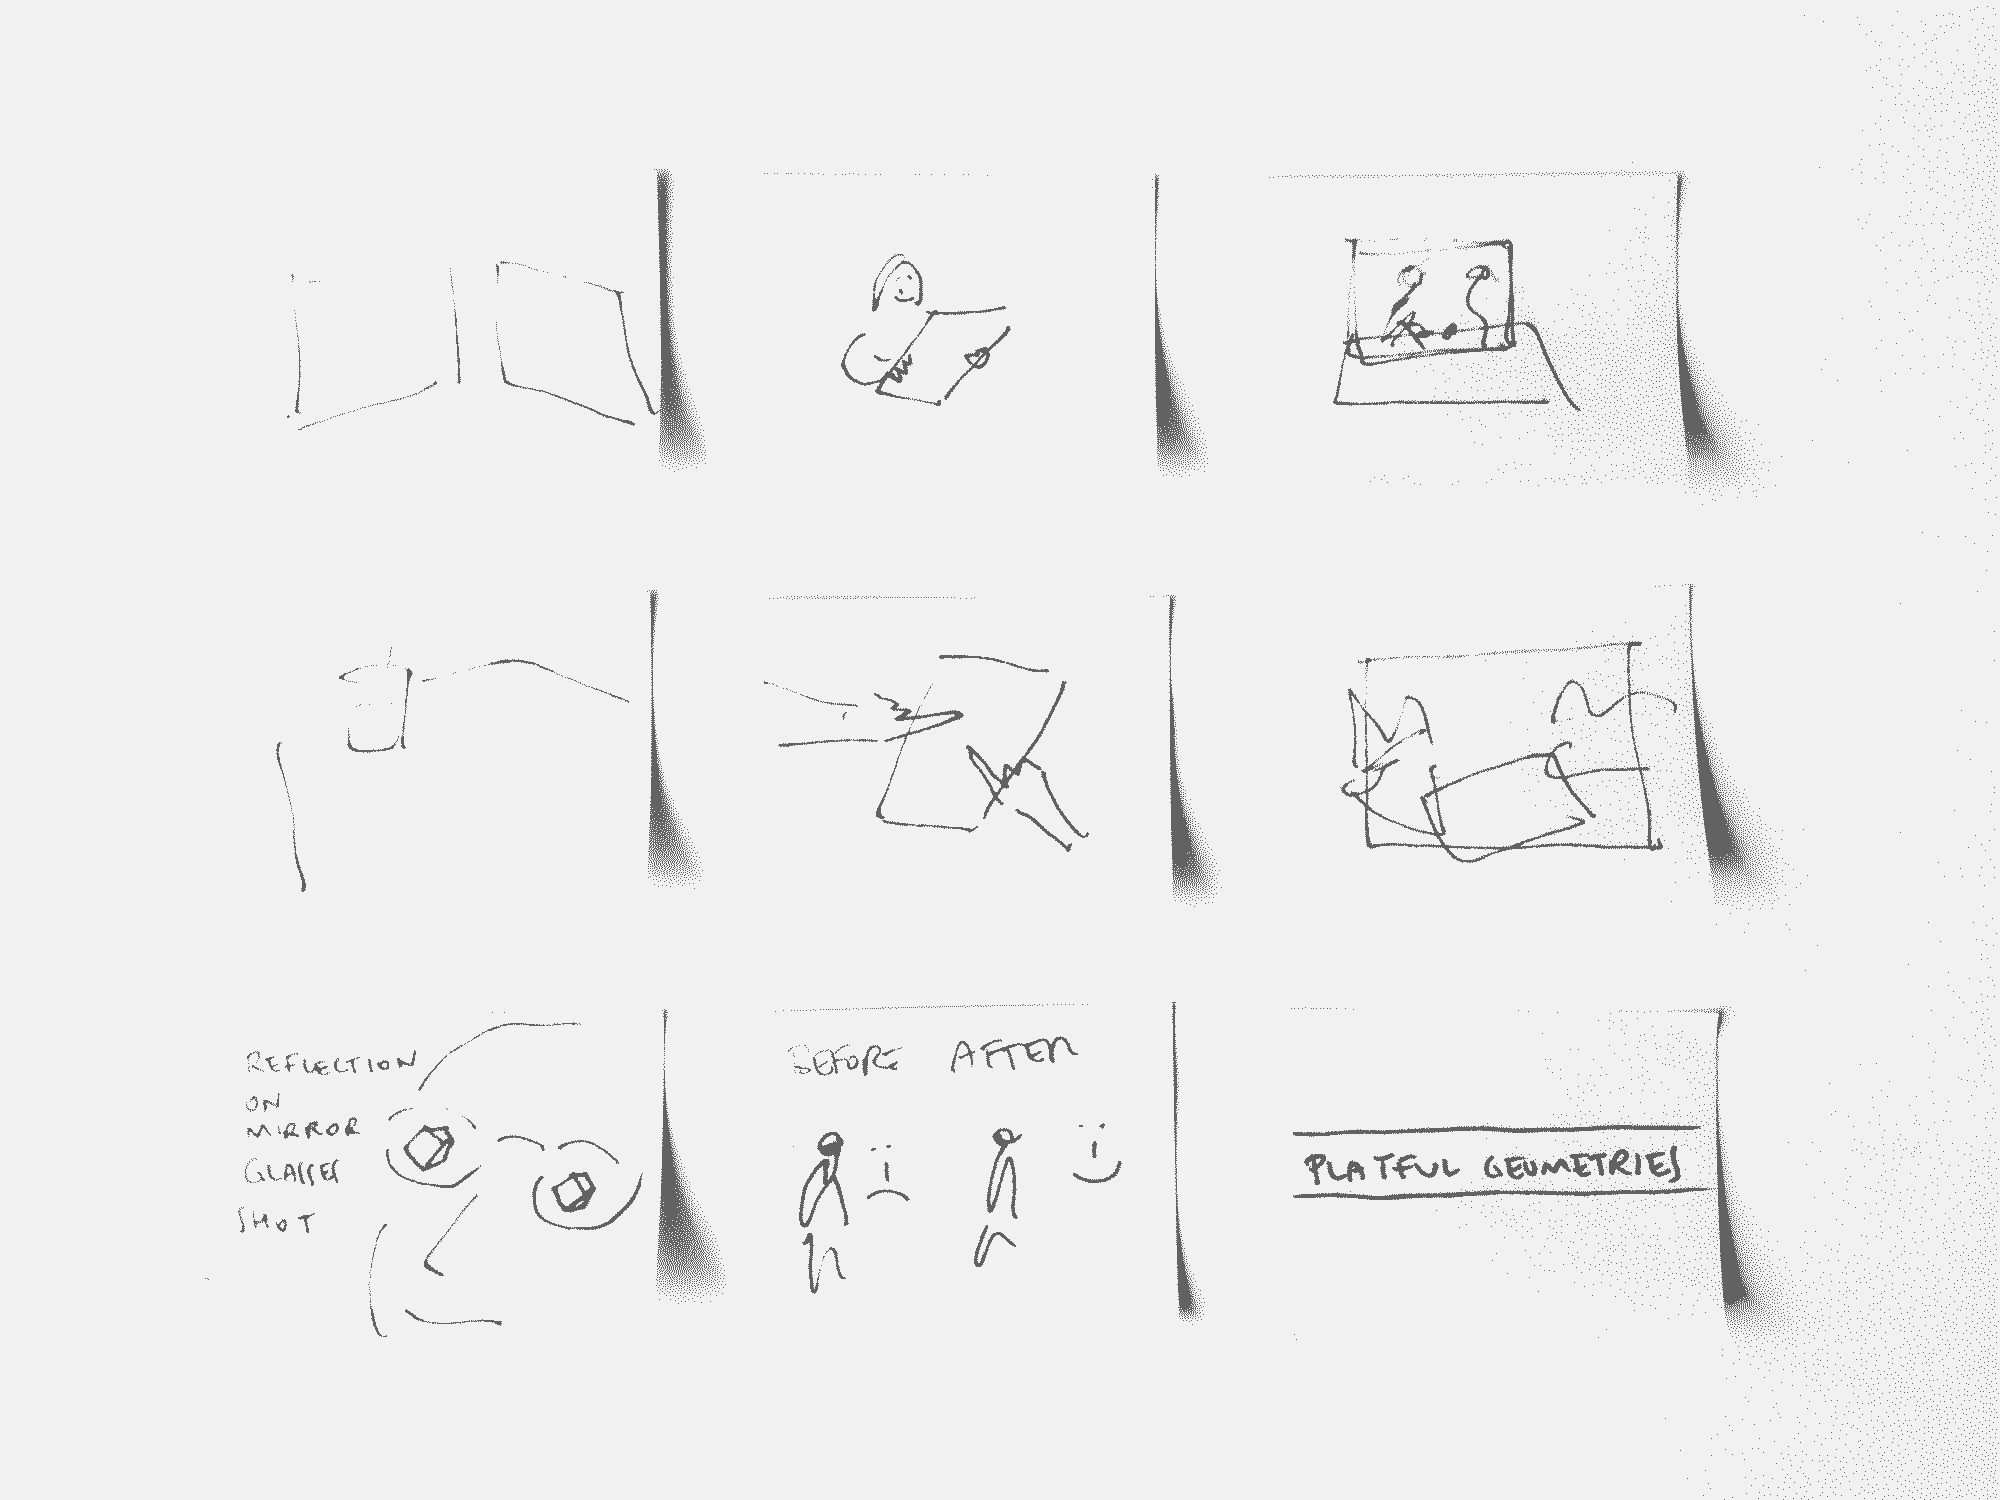 storyboard for the presentation video